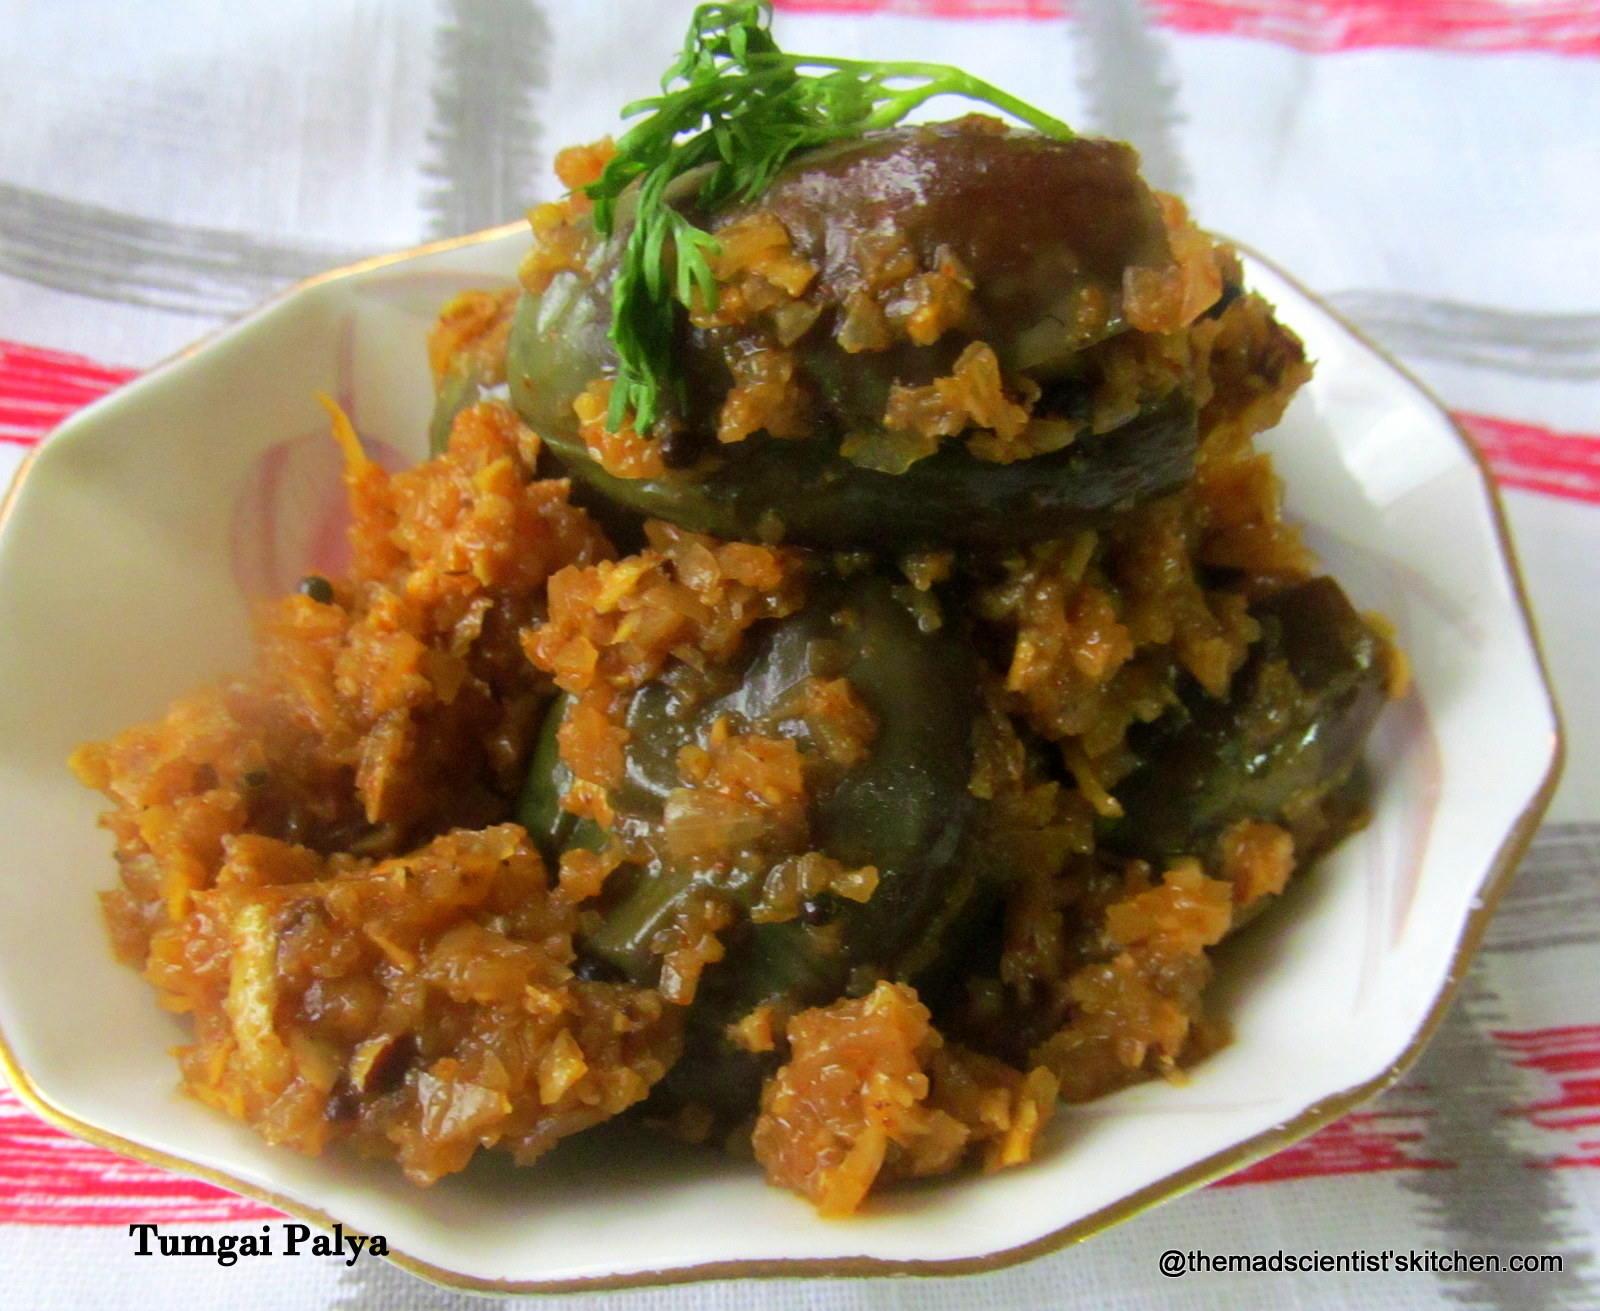 Ennegayi Palya, Stuffed Brinjal or Bharli Vangi, Stuffed Aubergines Indian Style